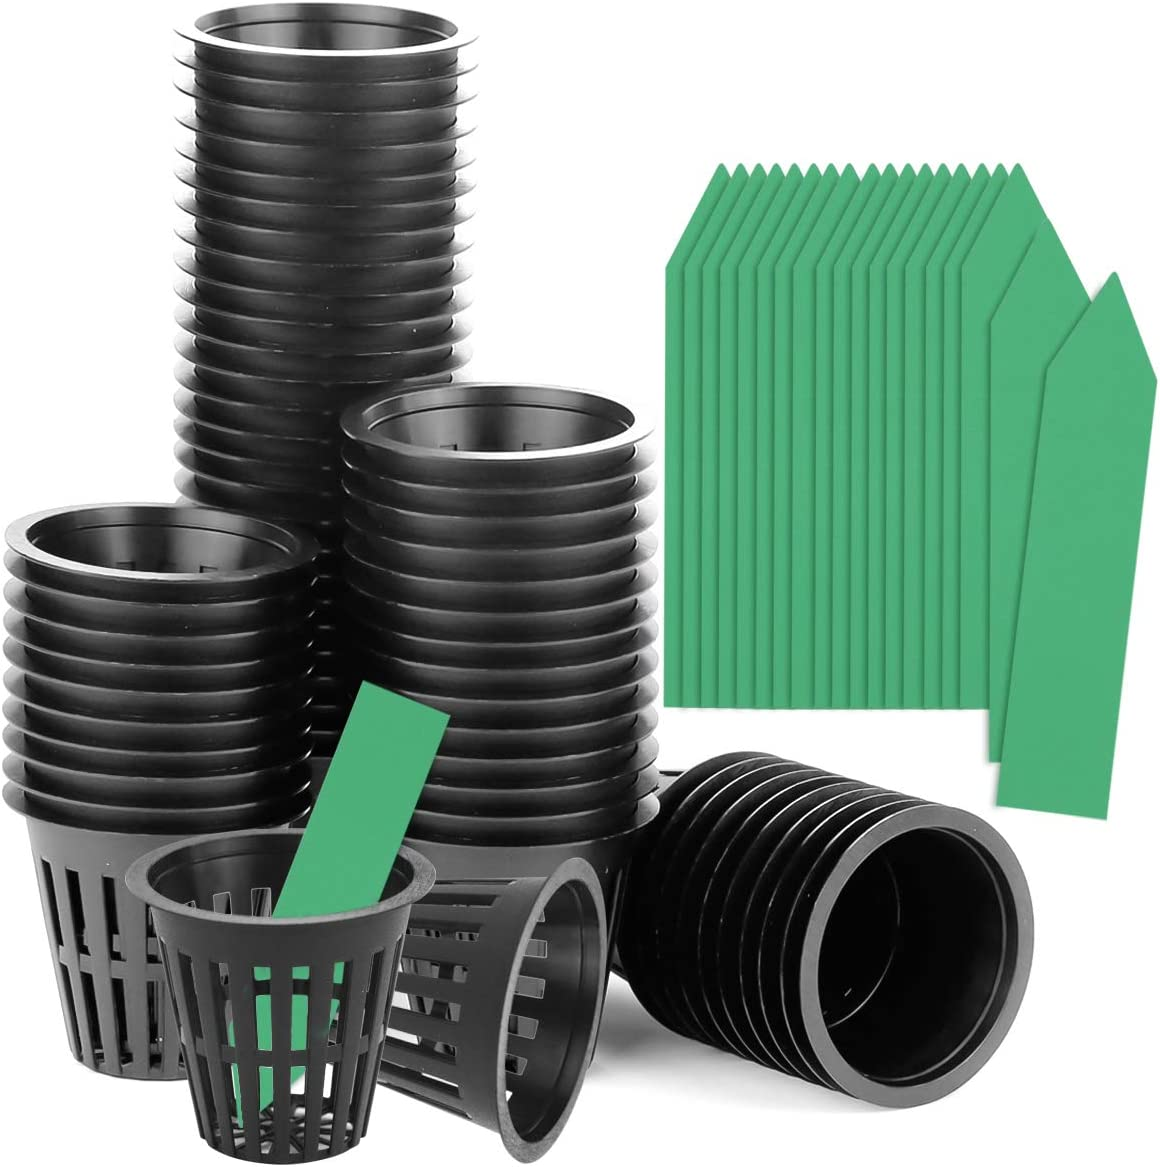 Weoxpr 60 Pack 2 Inch Garden Slotted Mesh Net Pot Cups with 60 Pcs Plant Labels, Heavy Duty Net Pots, Plastic Nursery Pots Bucket Basket for Hydroponics and Aquaponics